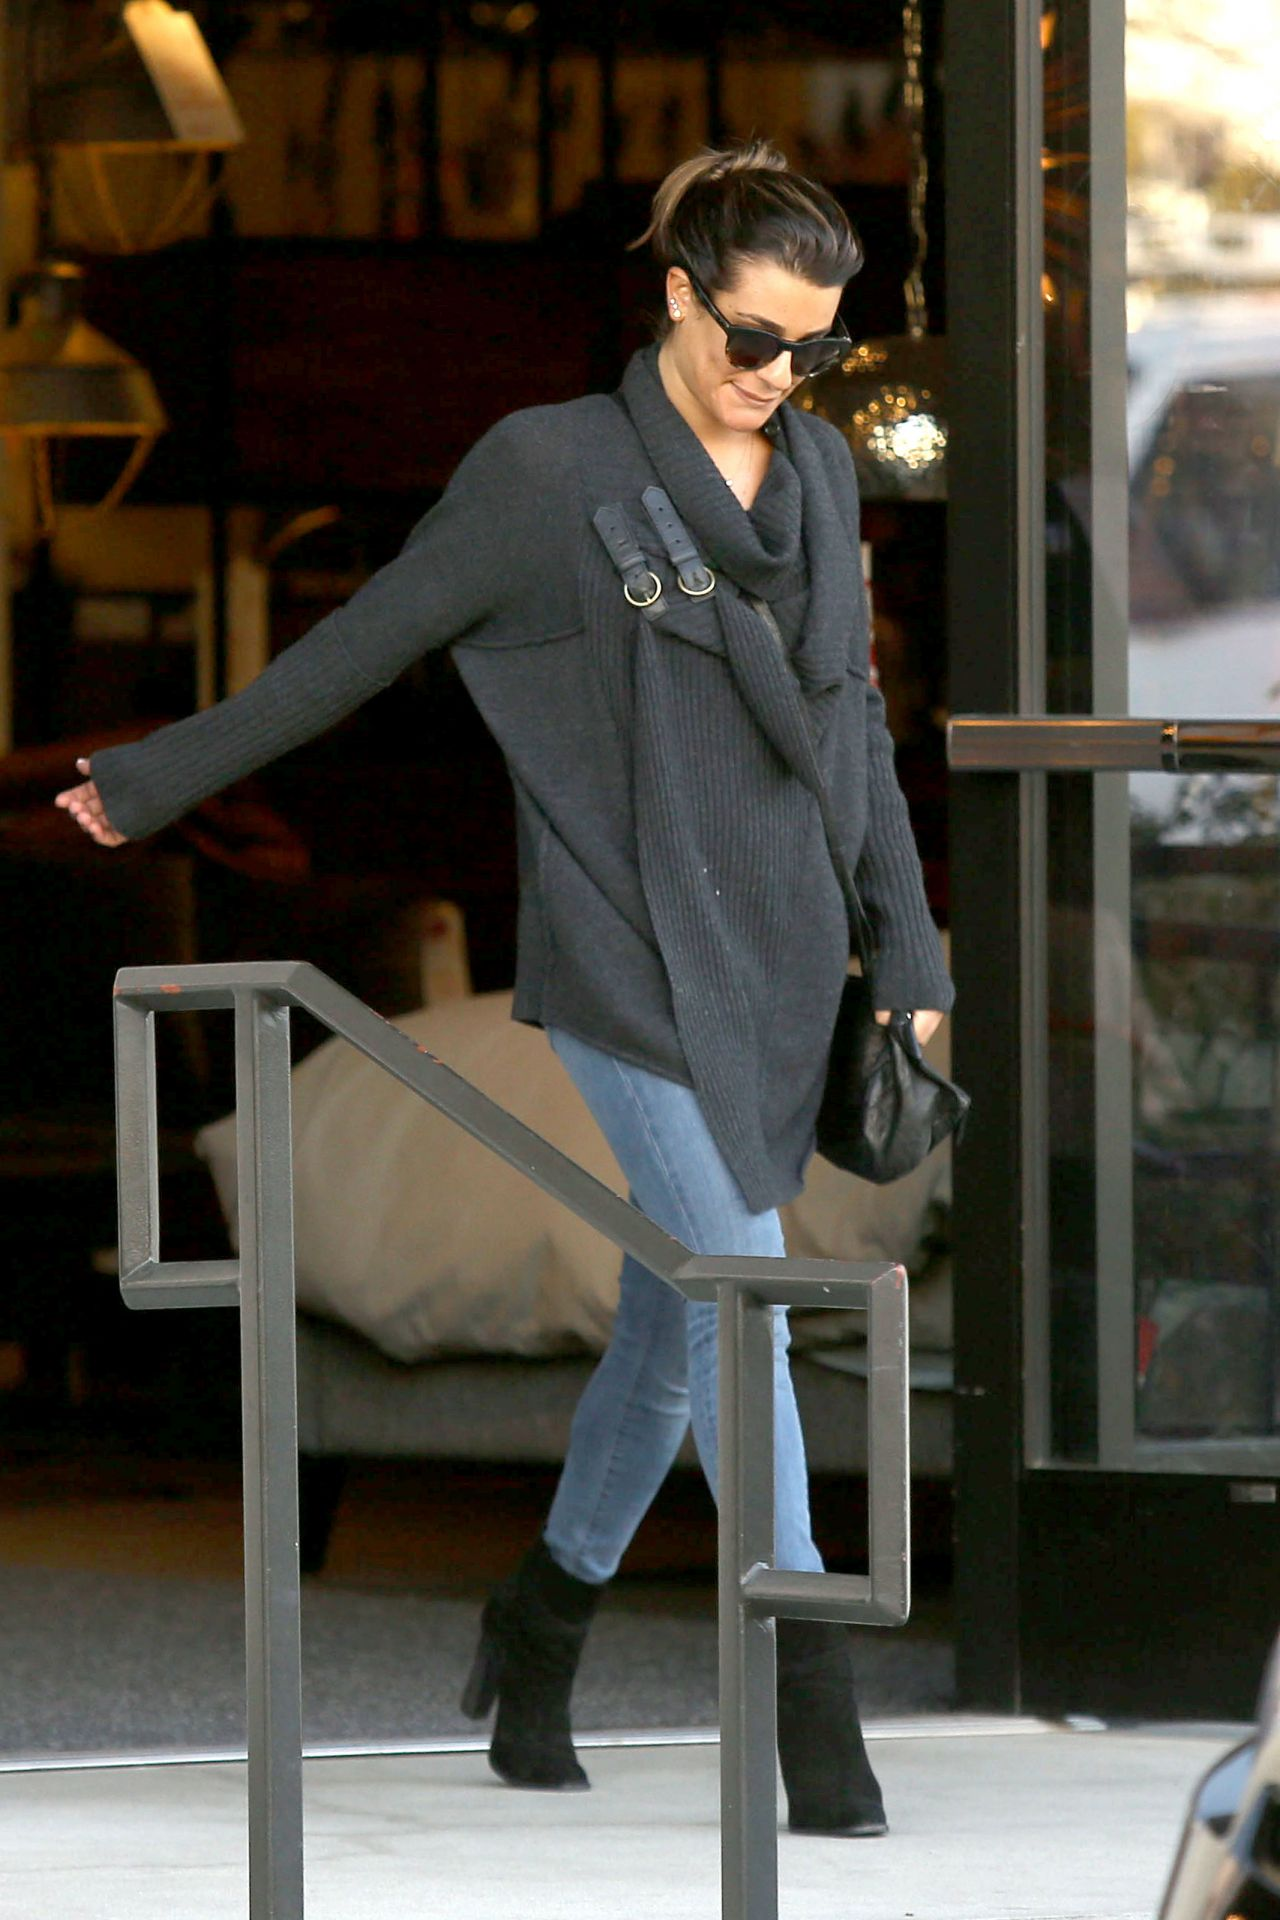 Lea Michele Street Style - January 2014